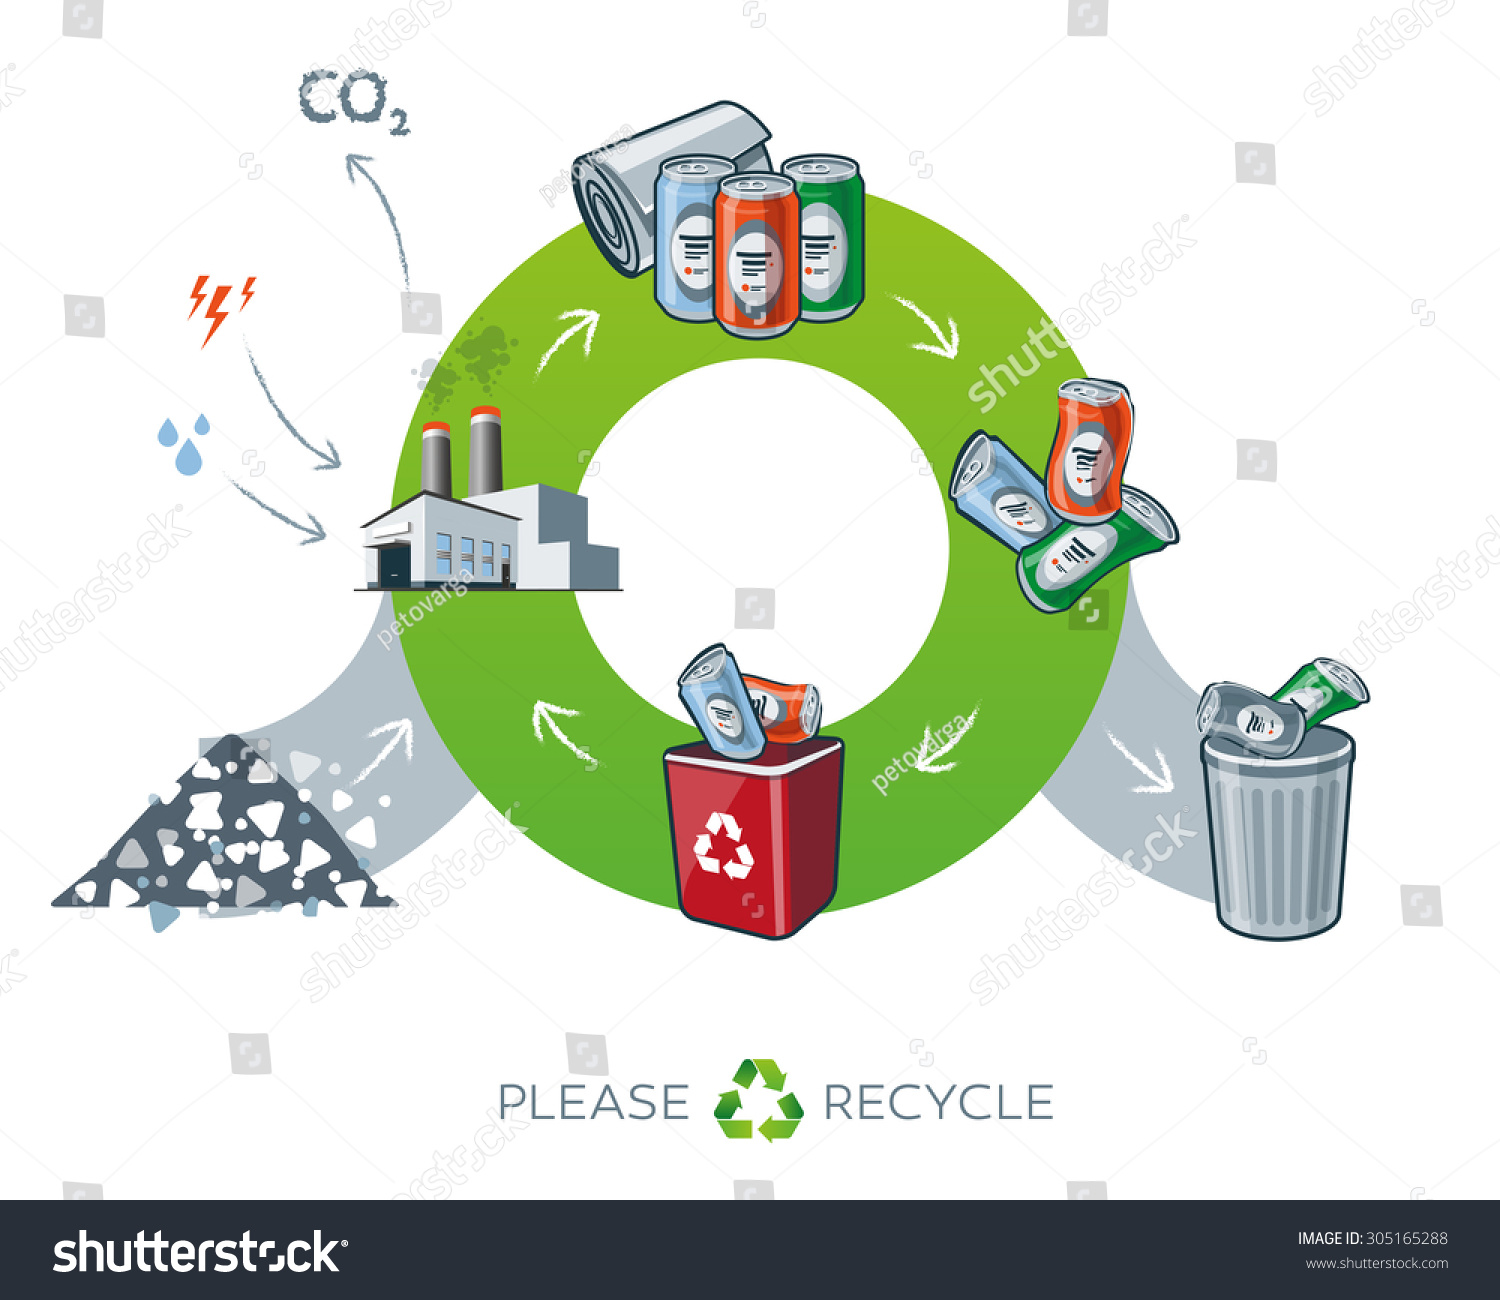 life cycle metal recycling simplified scheme stock vector 305165288   shutterstock